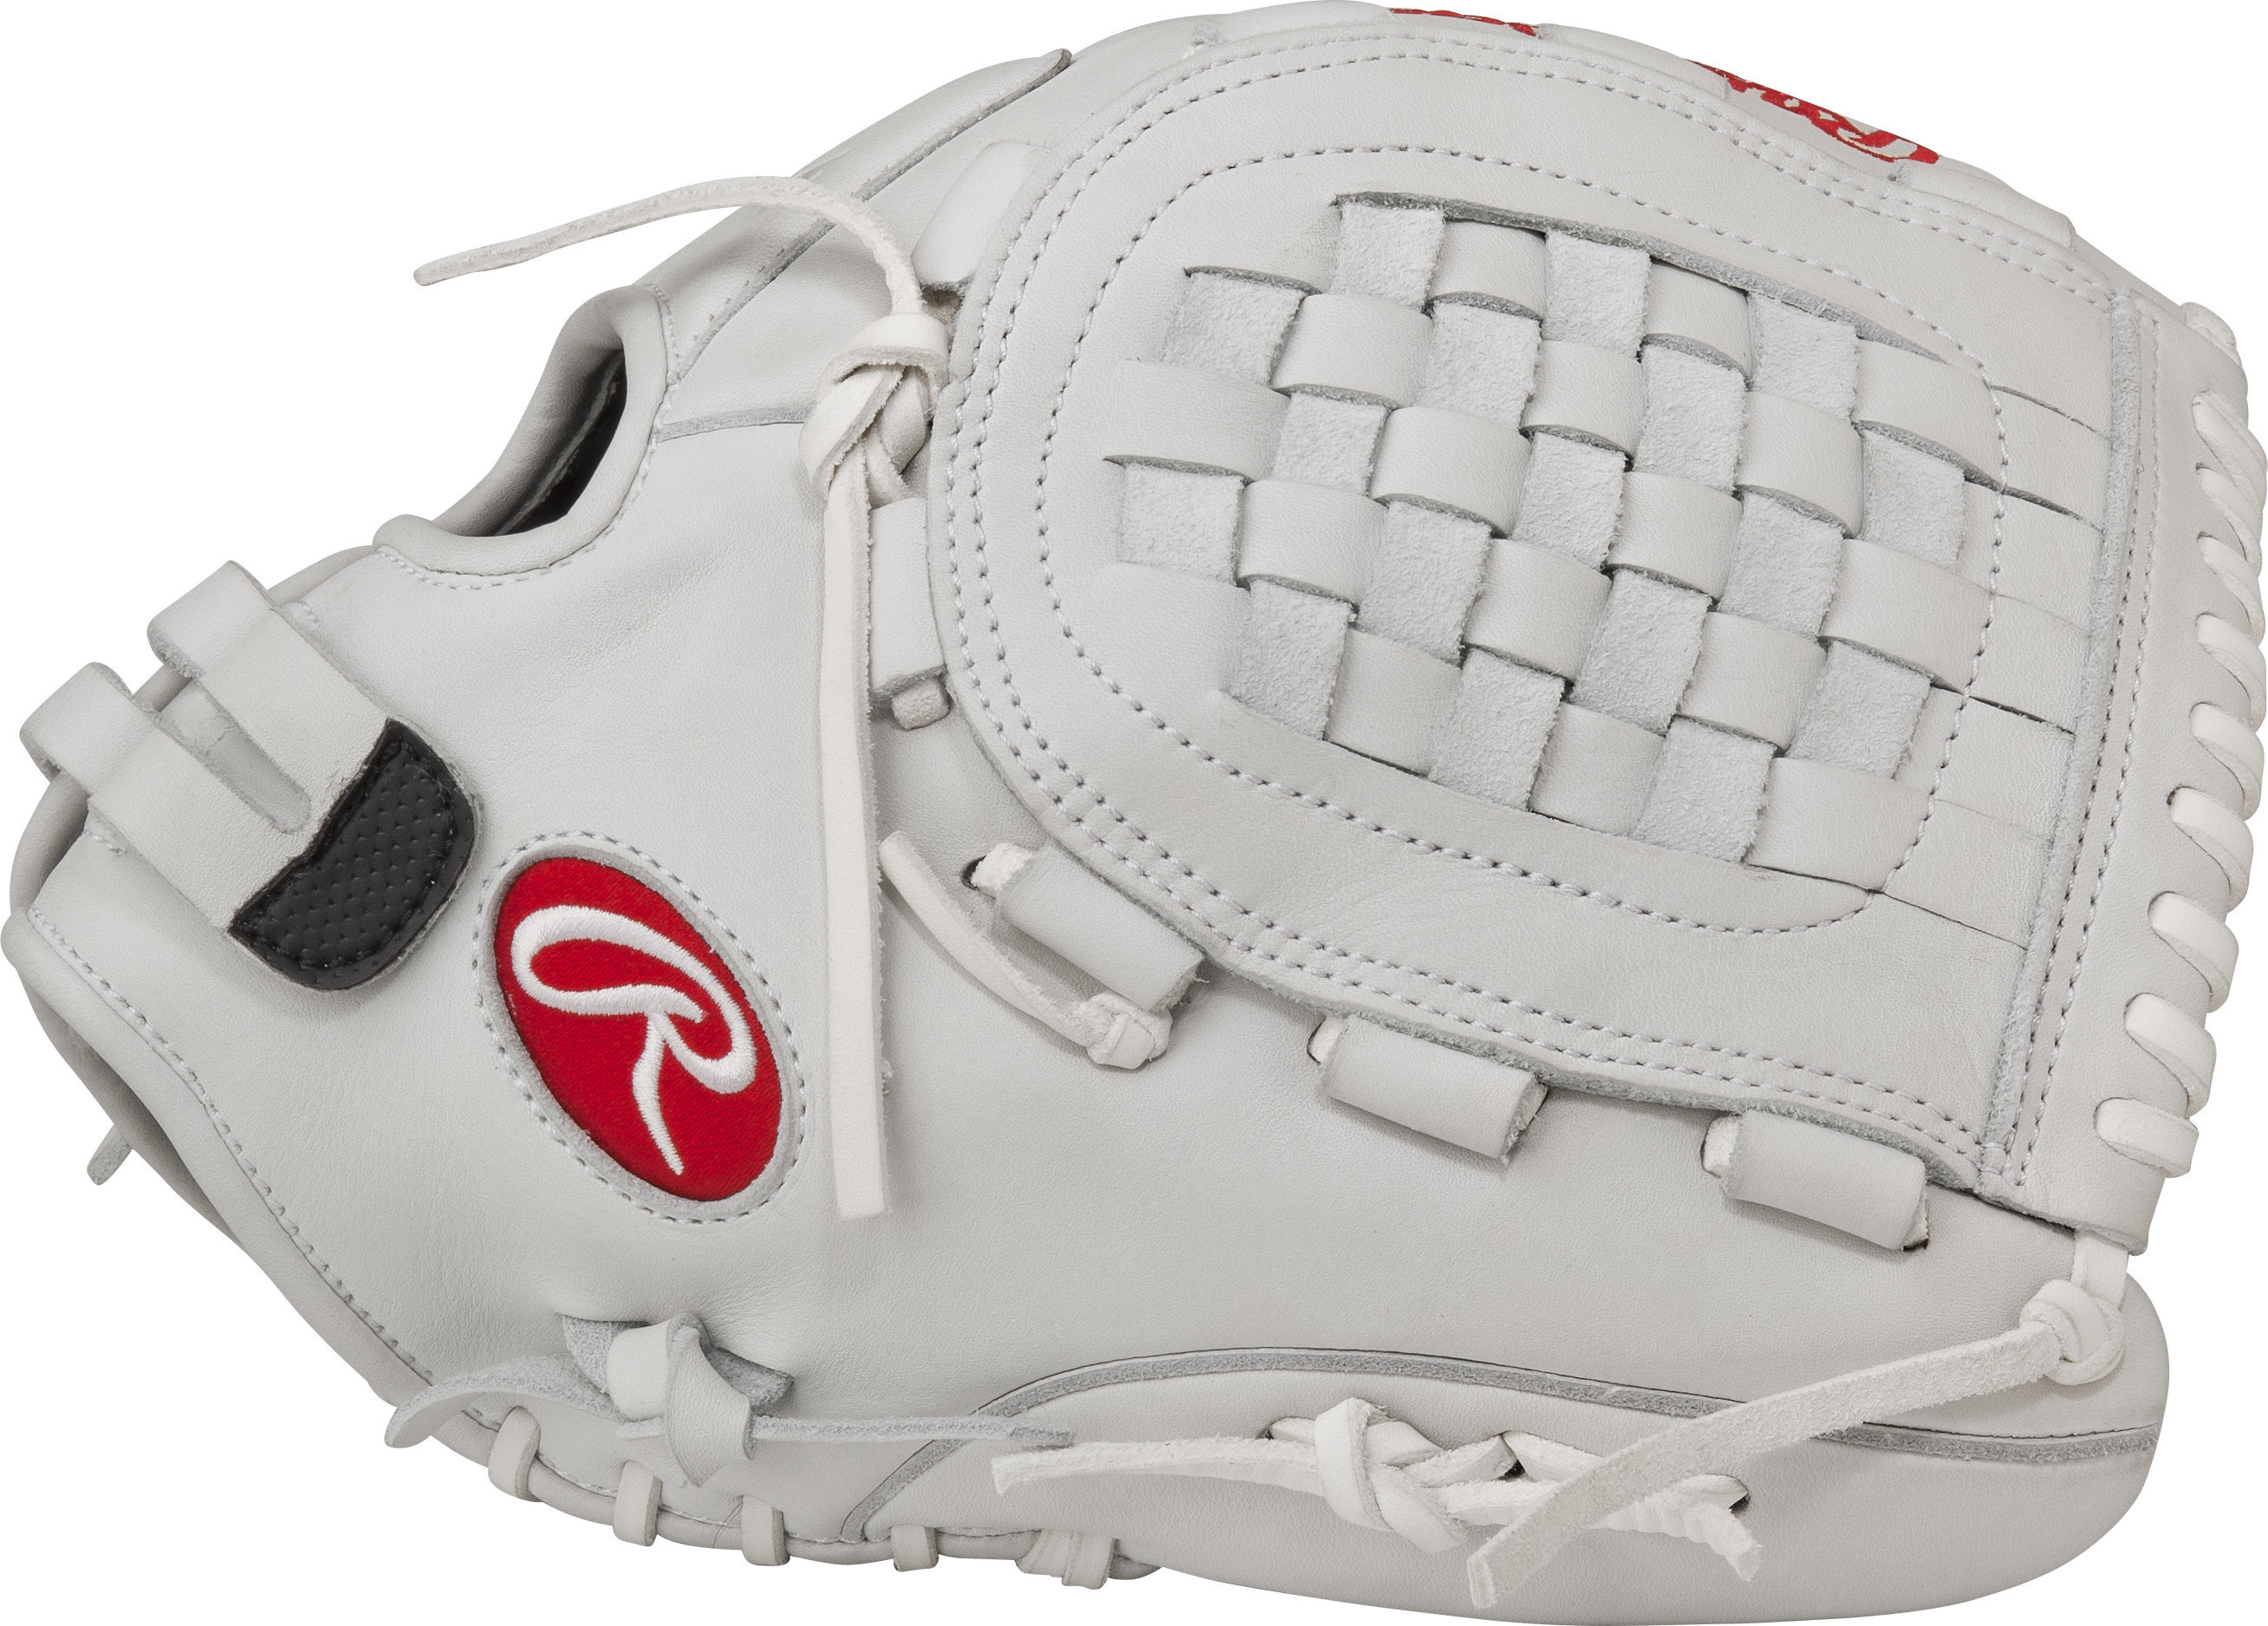 http://www.bestbatdeals.com/images/gloves/rawlings/RLA125KR_thumb.jpg